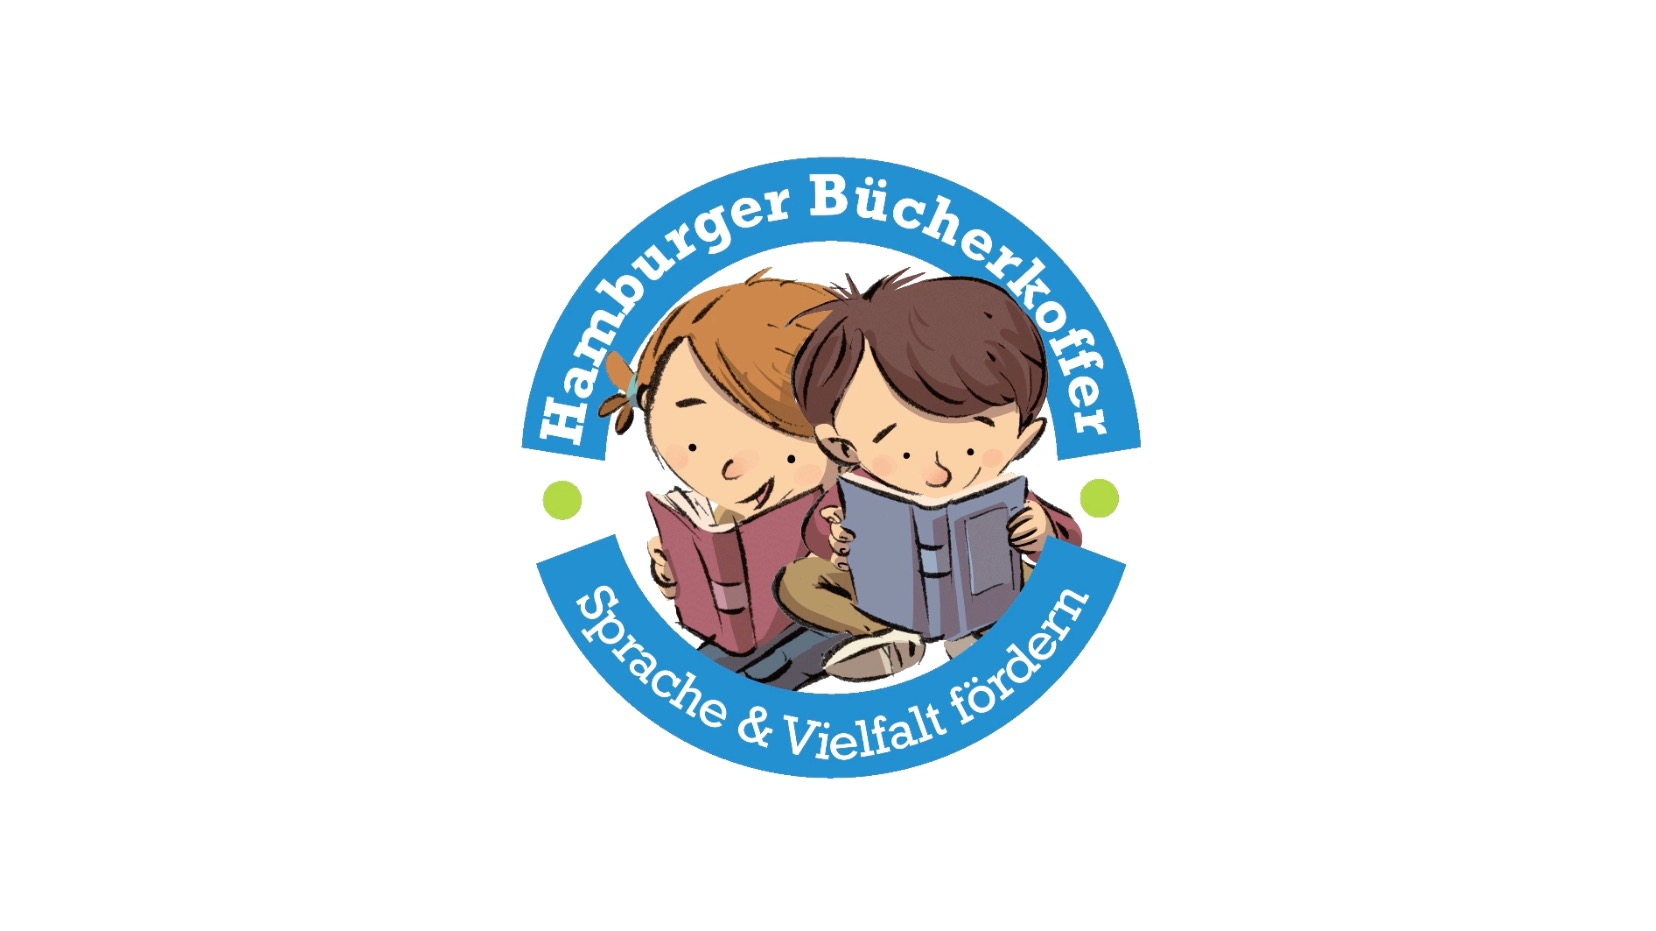 Video-Clips & Seminare  | Der Hamburger Bücherkoffer